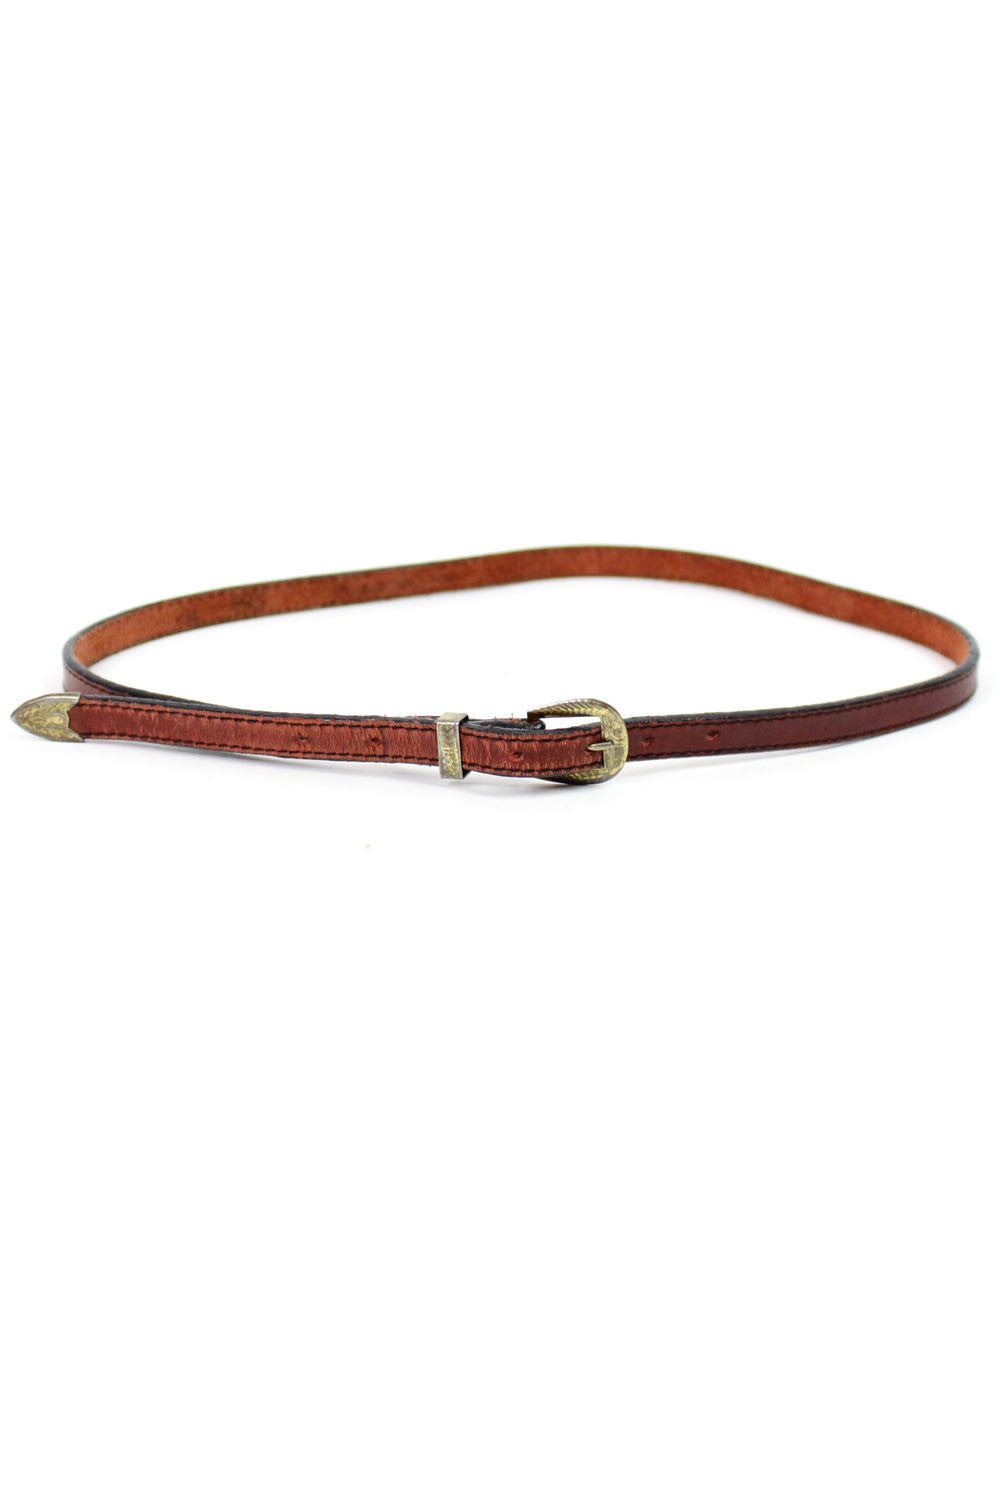 Rust Leather Skinny Belt S/M